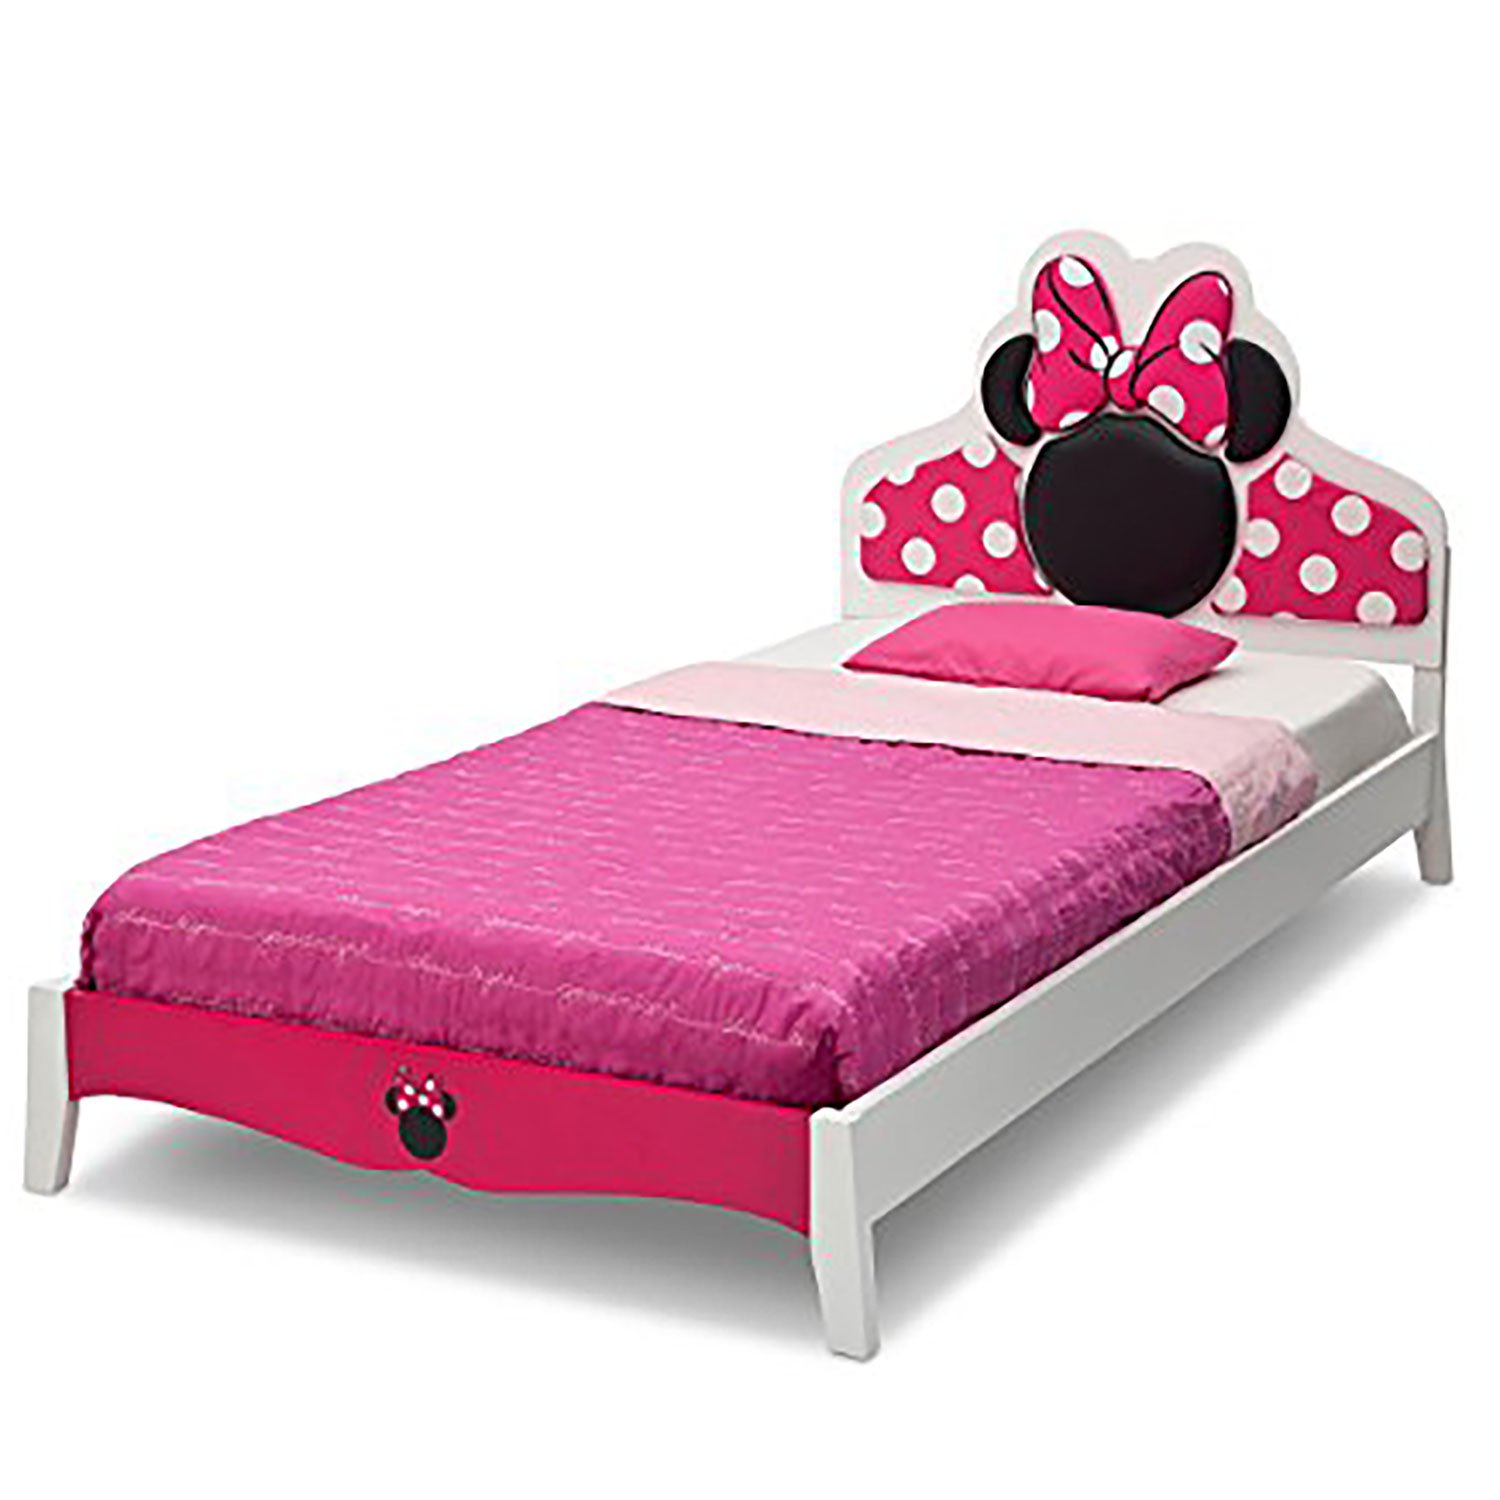 Delta Children Disney Minnie Mouse Wood Twin Toddler Girl Furniture Bed Frame